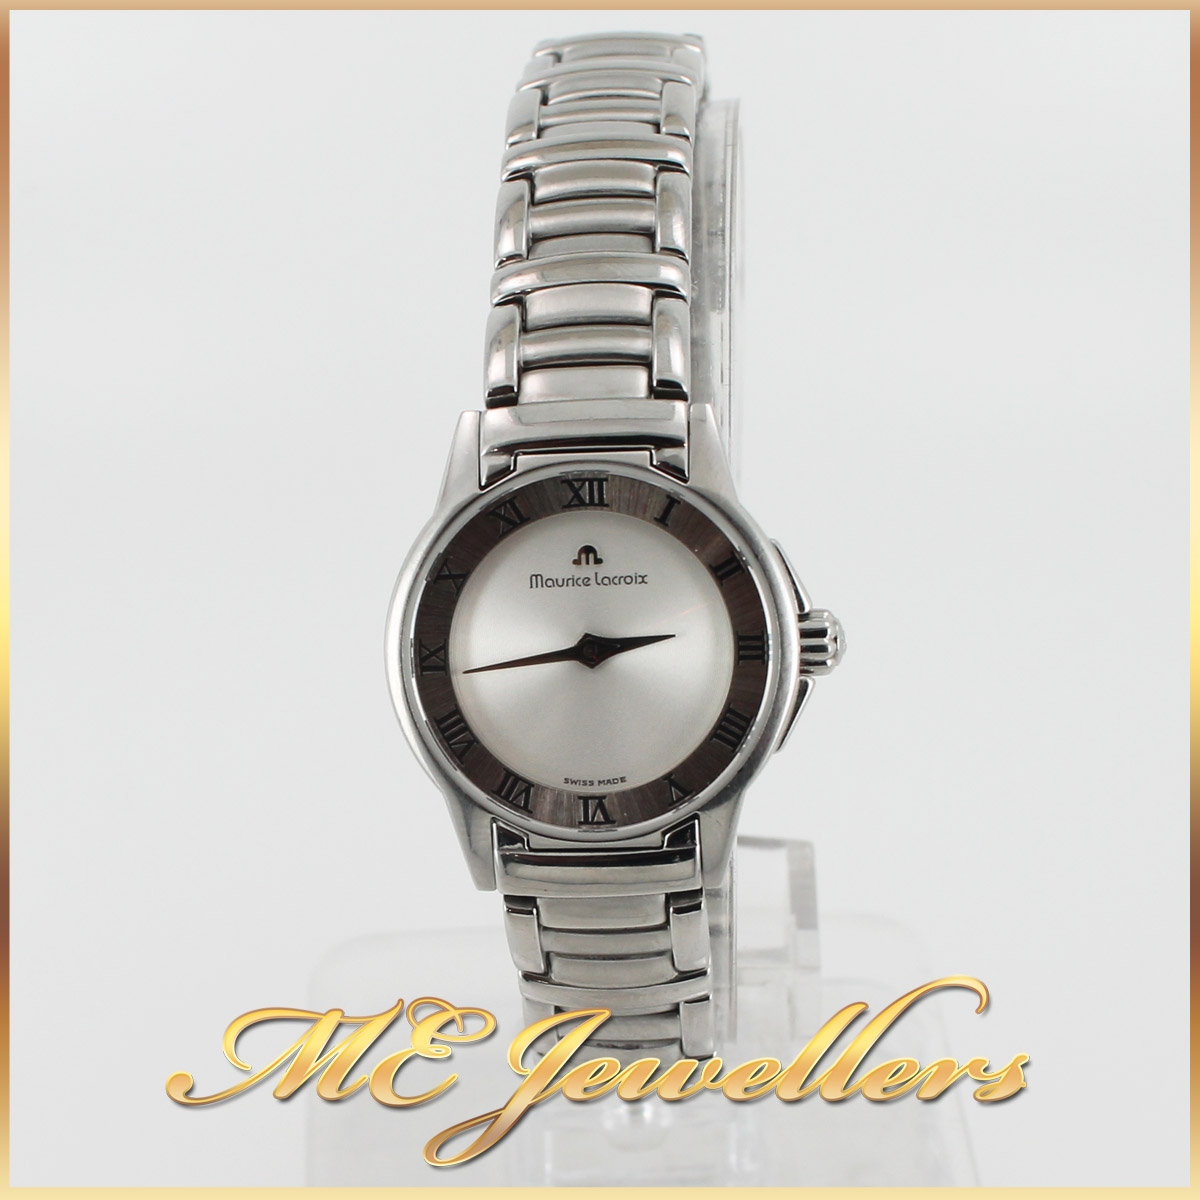 5486 Maurice Lacroix Watch 4